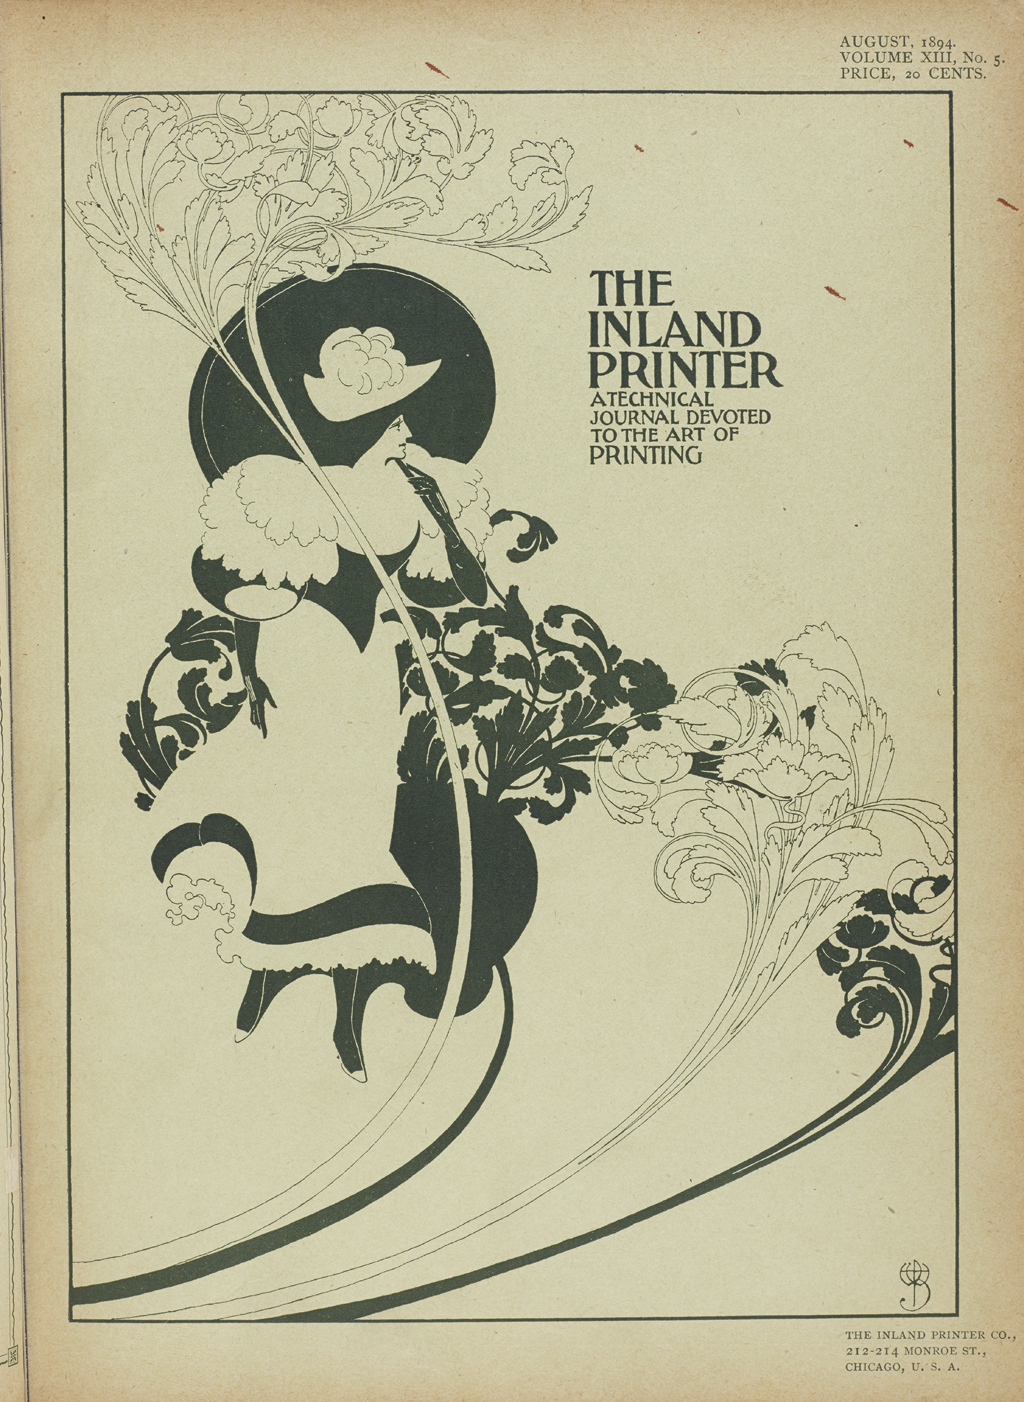 Cover, The Inland Printer (August 1894). Design by Will Bradley.